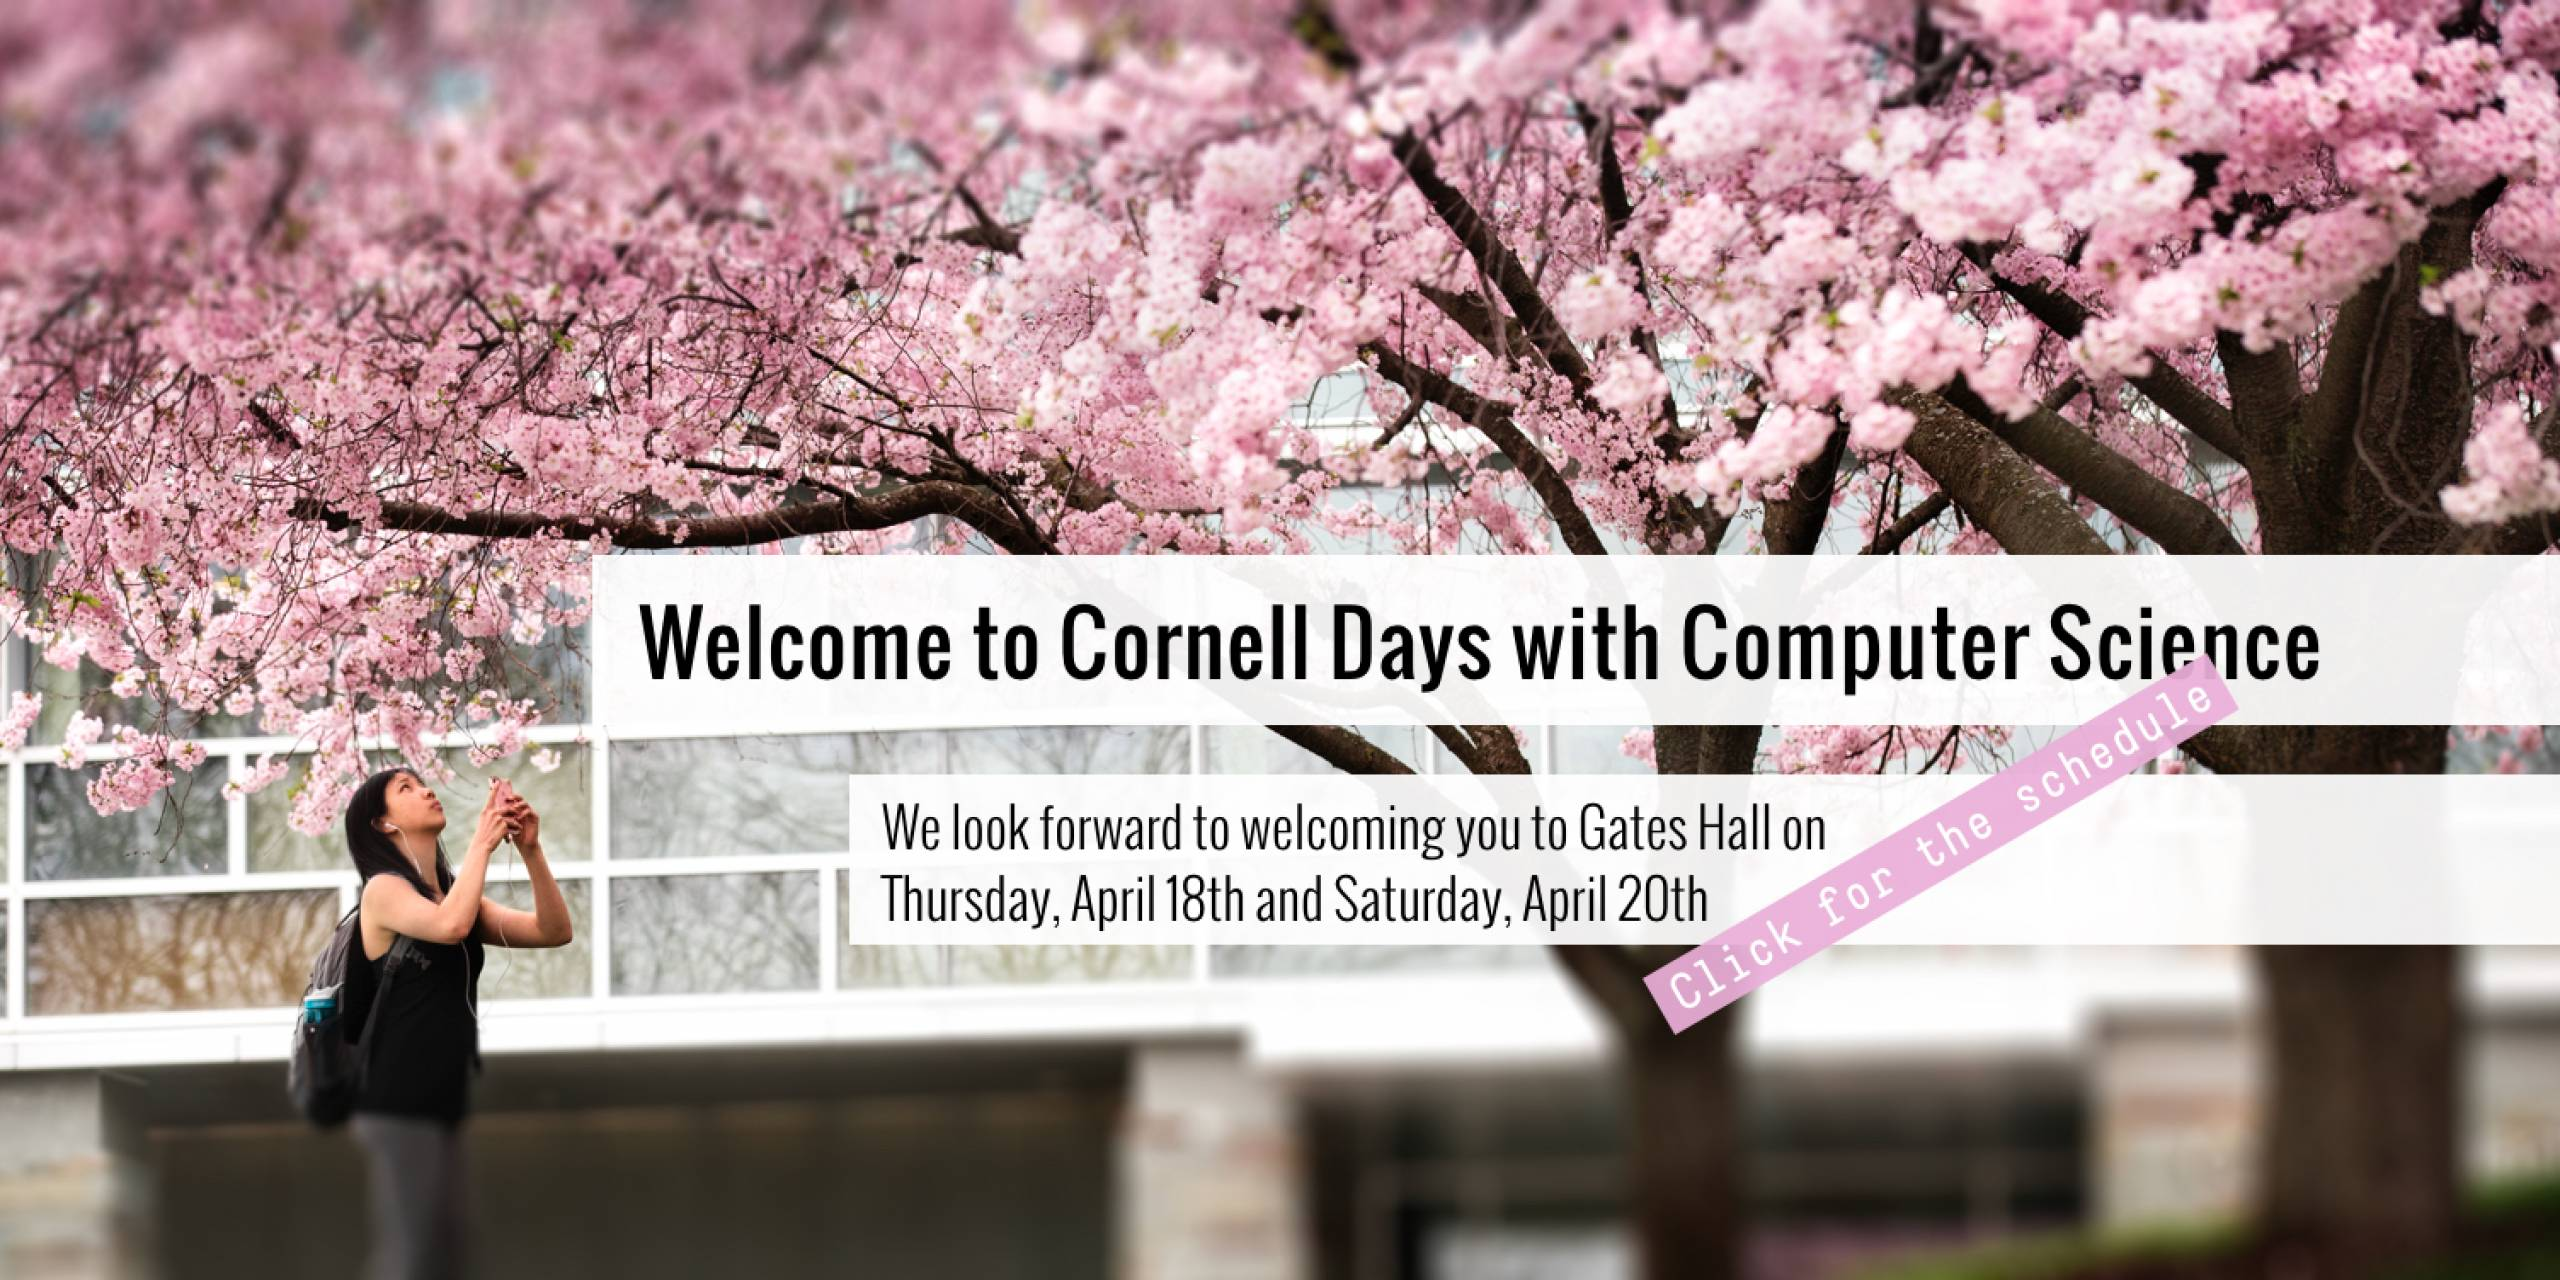 Welcome to Cornell Days with Computer Science